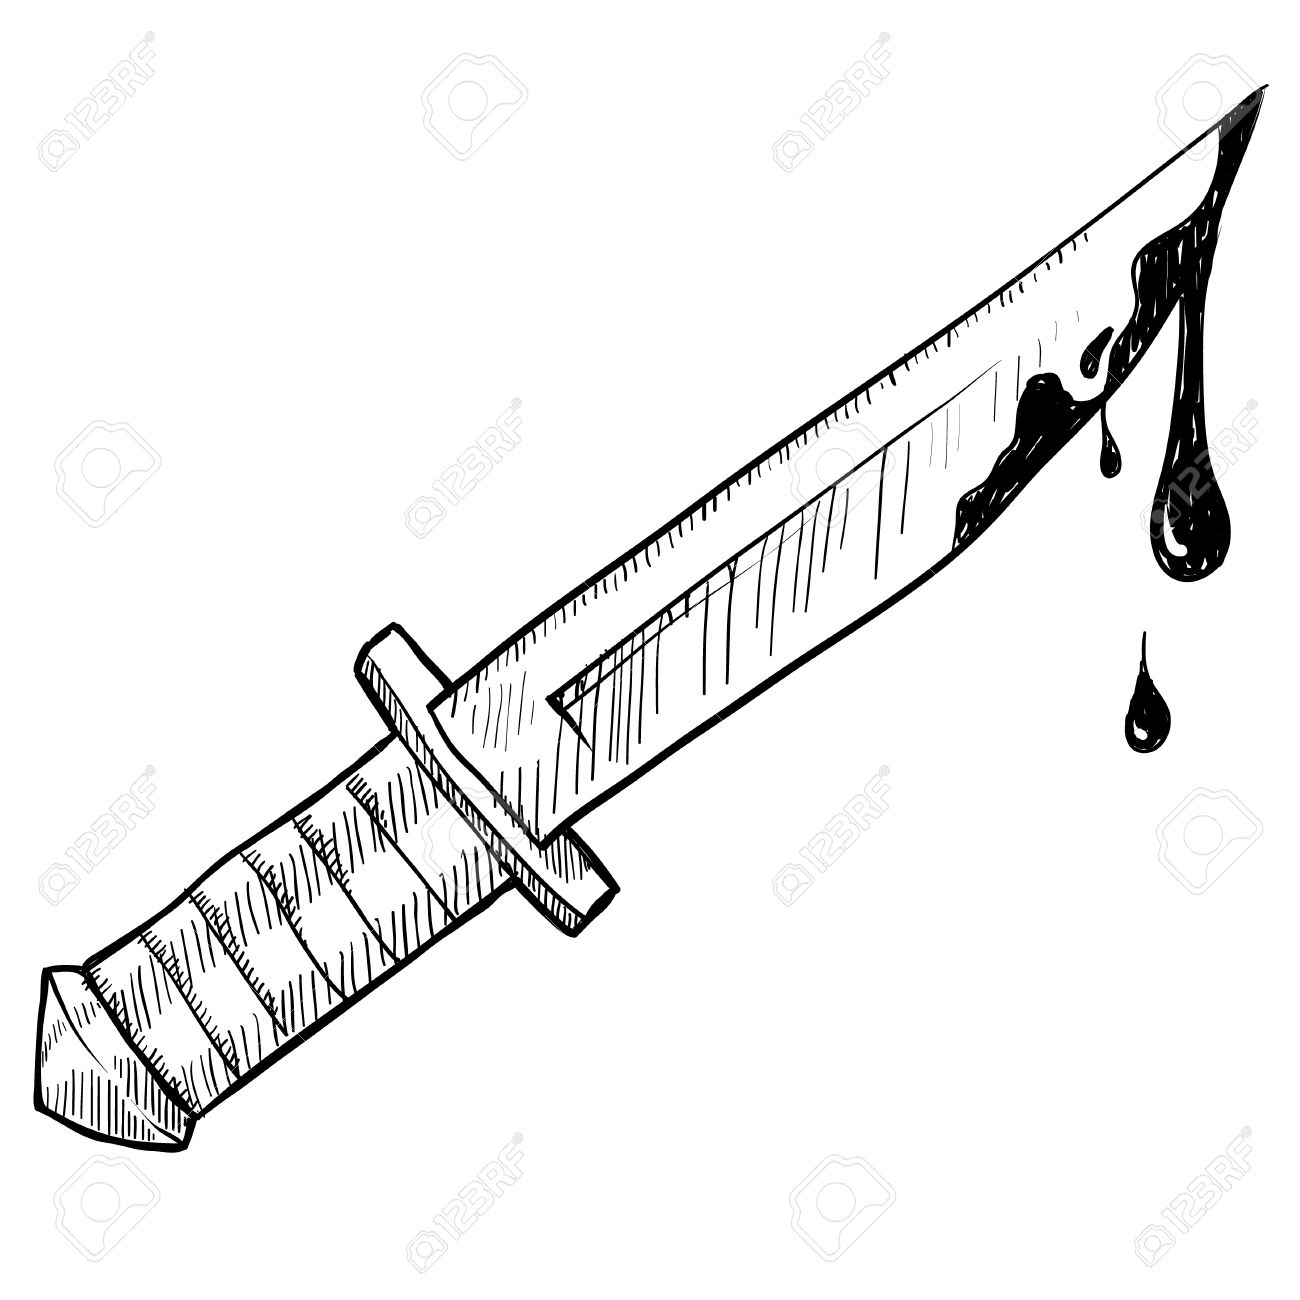 1300x1300 Doodle Style Knife Or Murder Vector Illustration Stock Photo